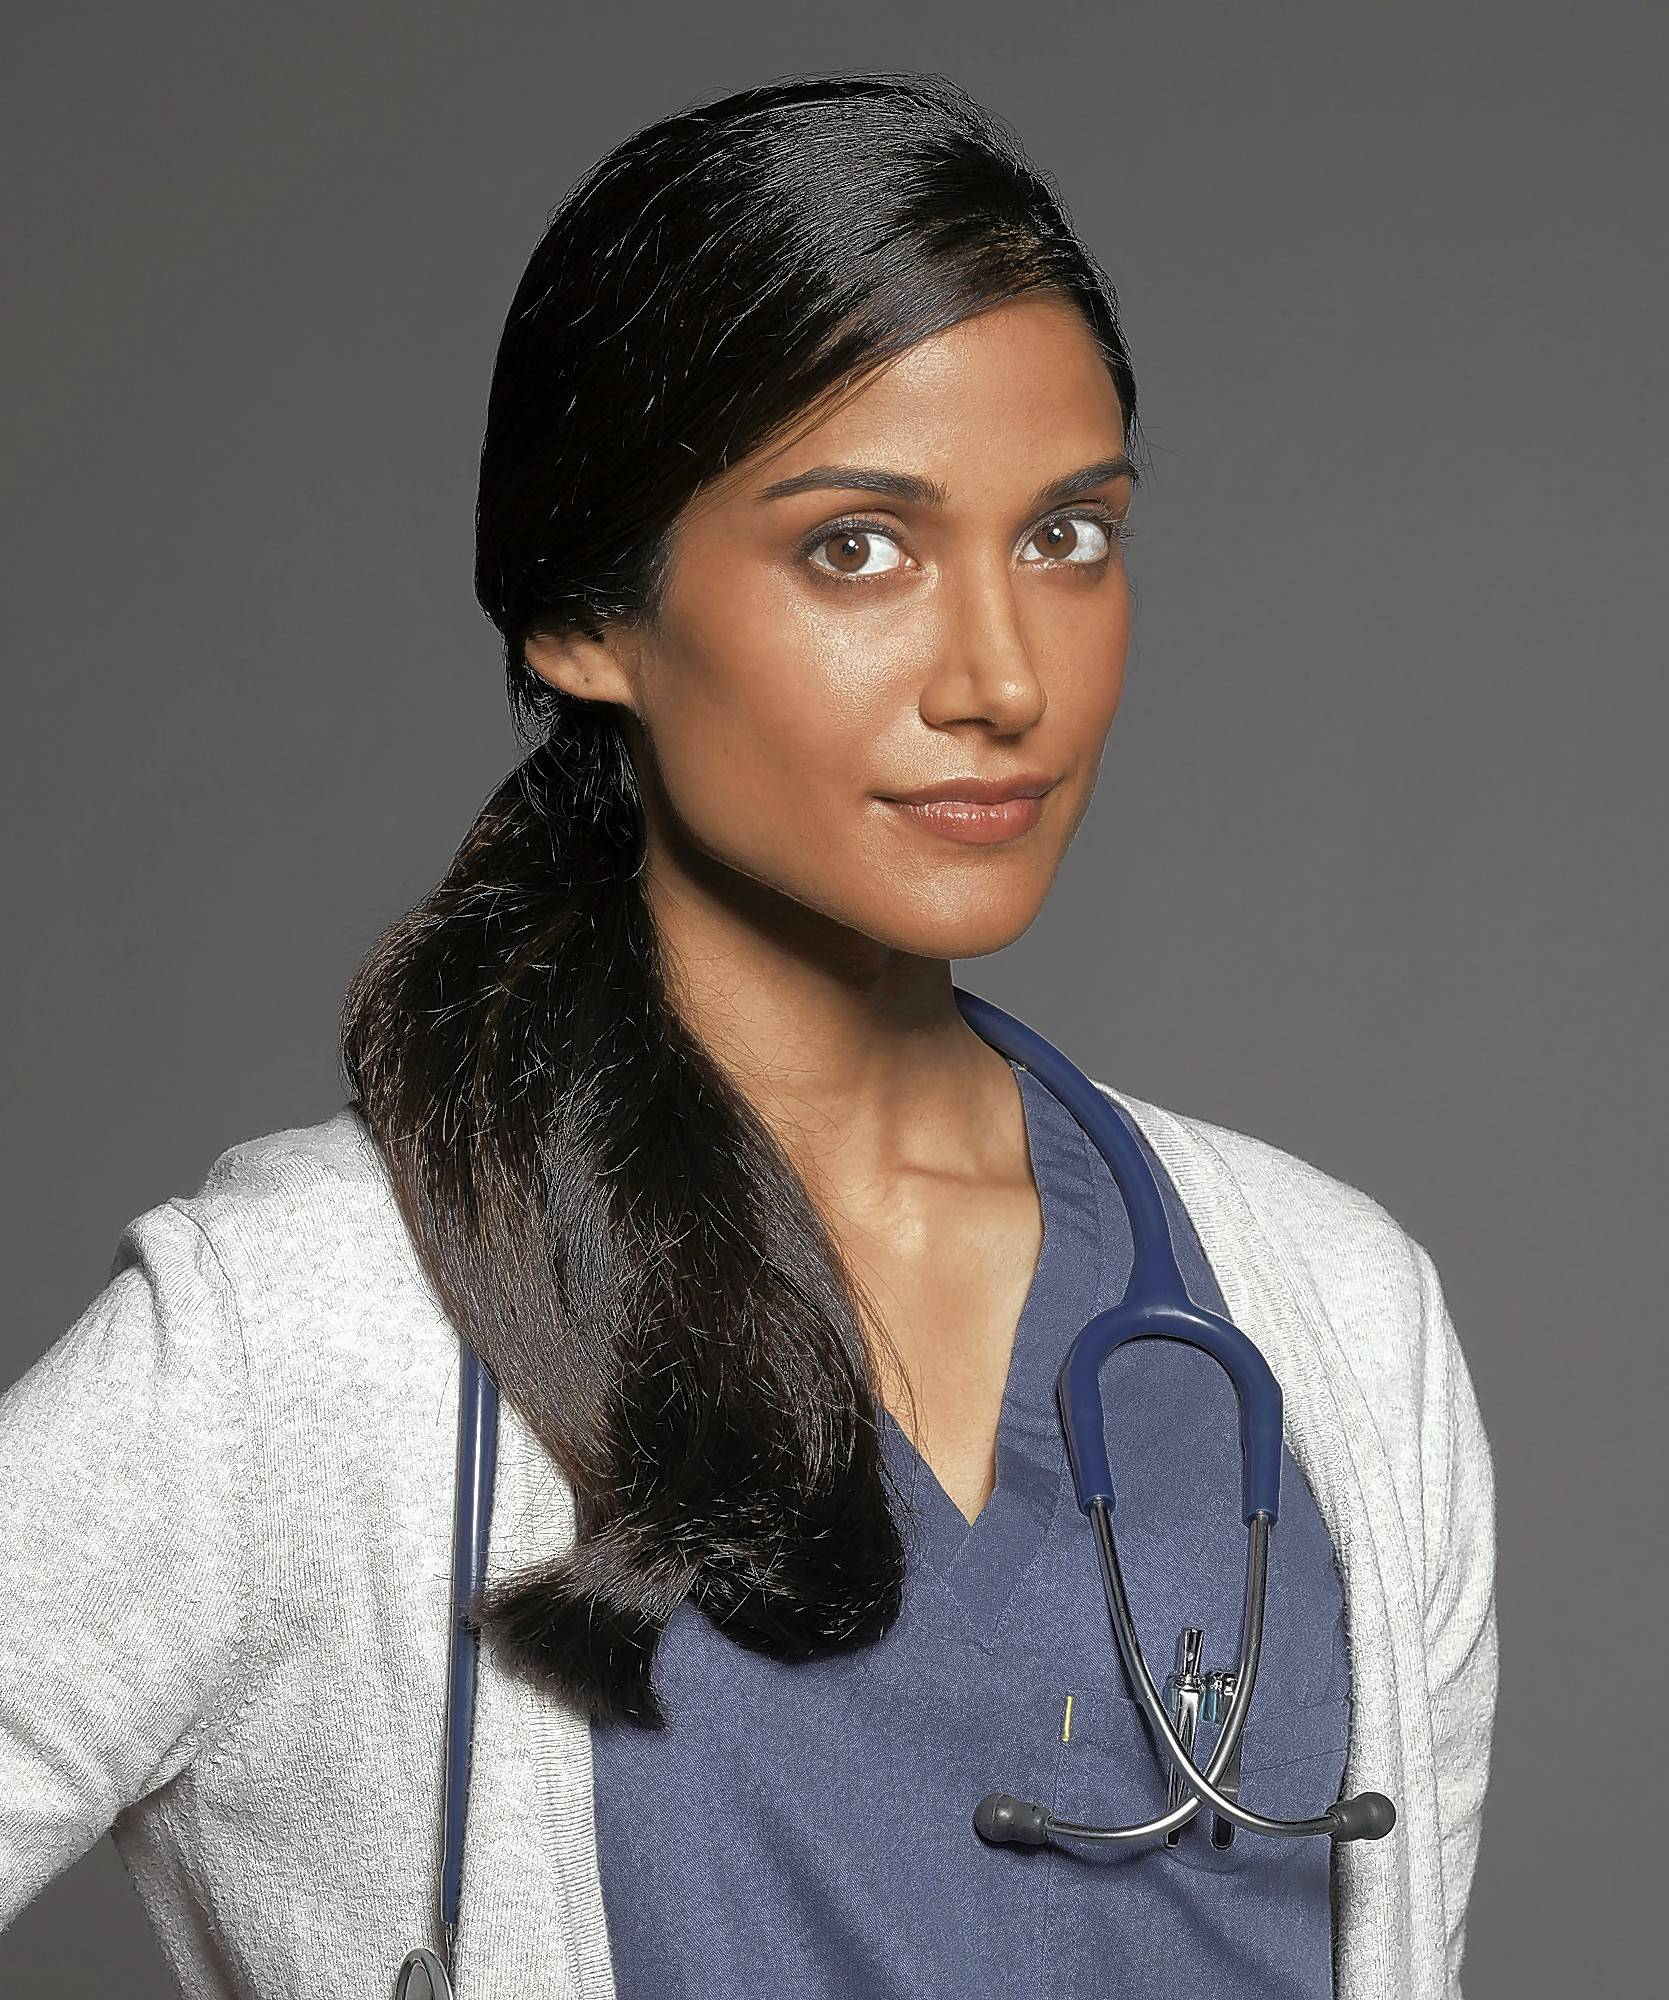 Buffalo Grove grad's 'Code Black' role just latest in her success